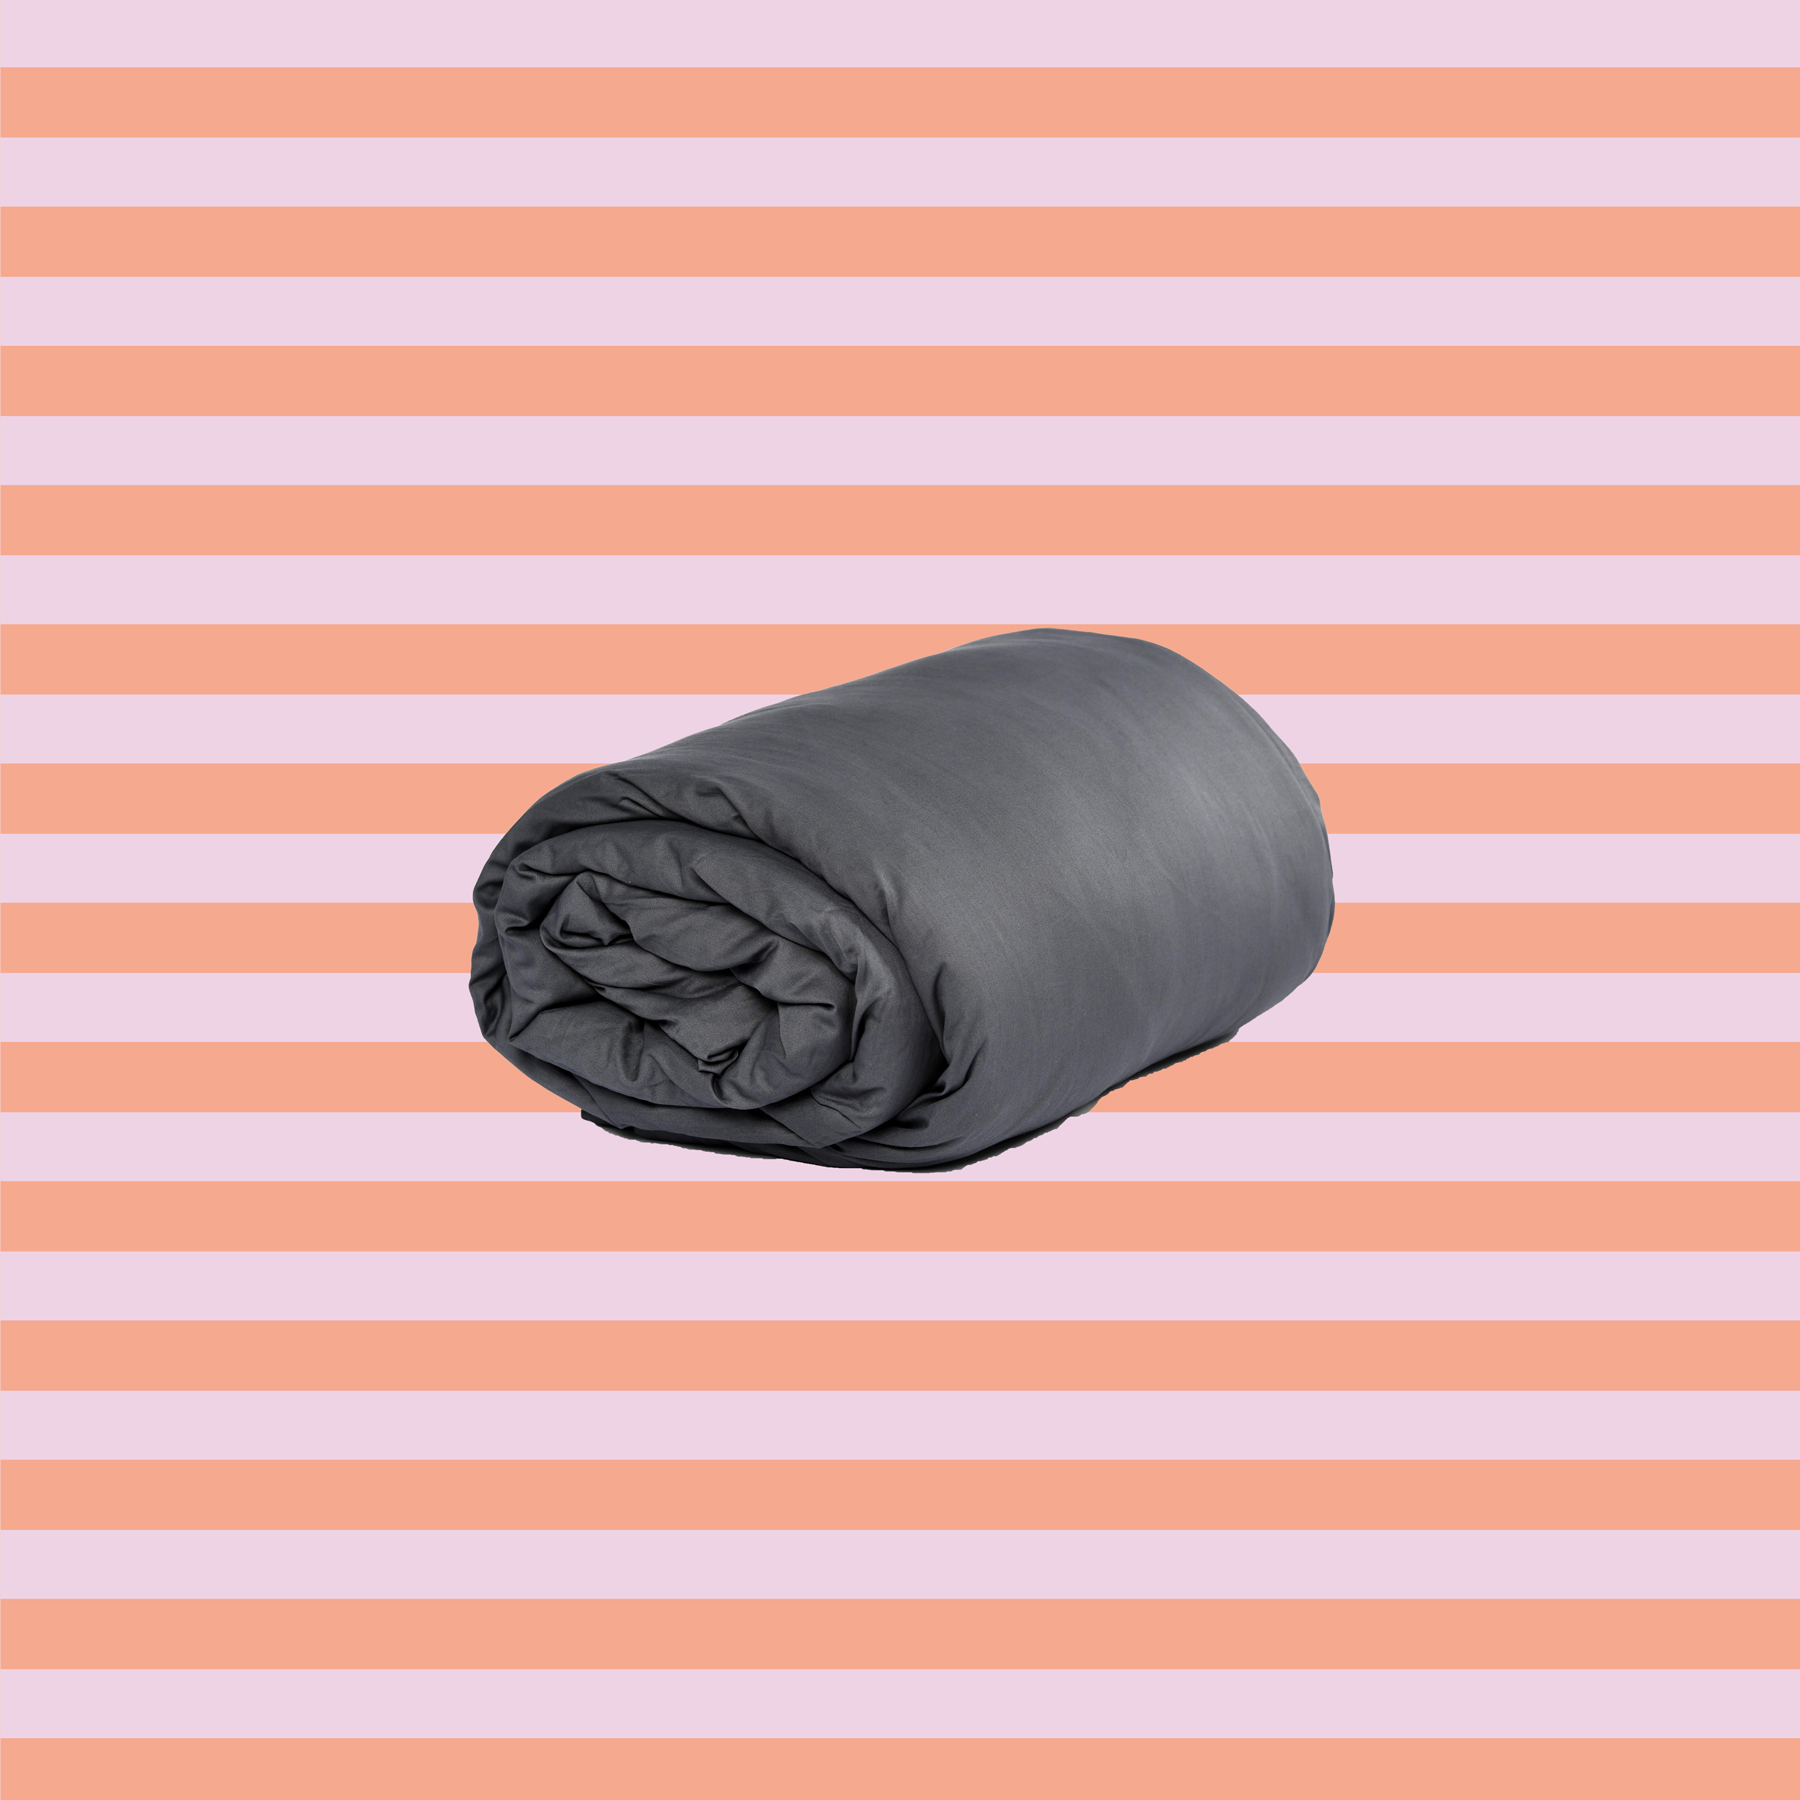 Weighted blanket shopping guide - weighted blanket for adults and kids